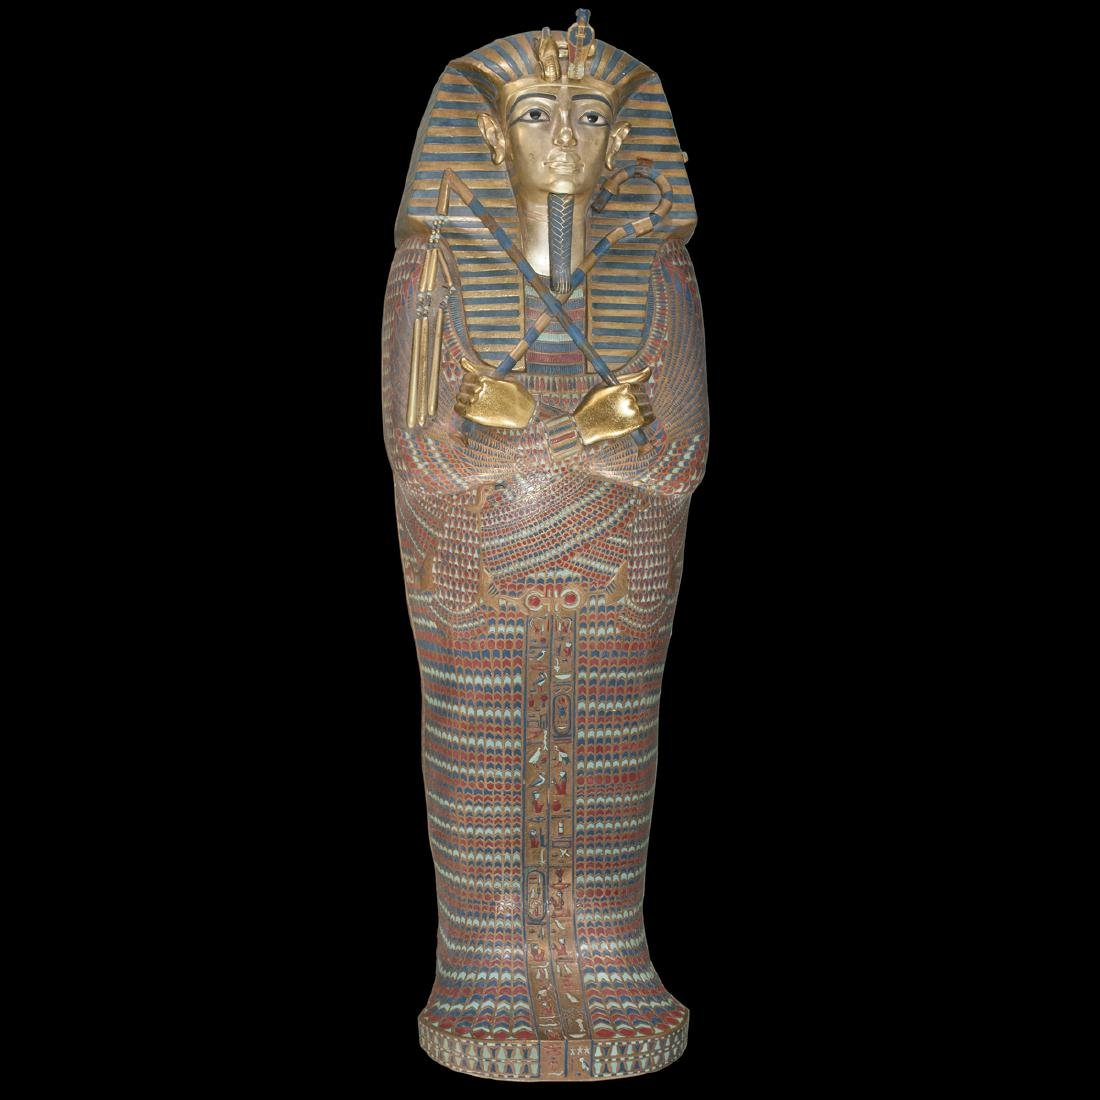 King Tut Replica Sarcophagus